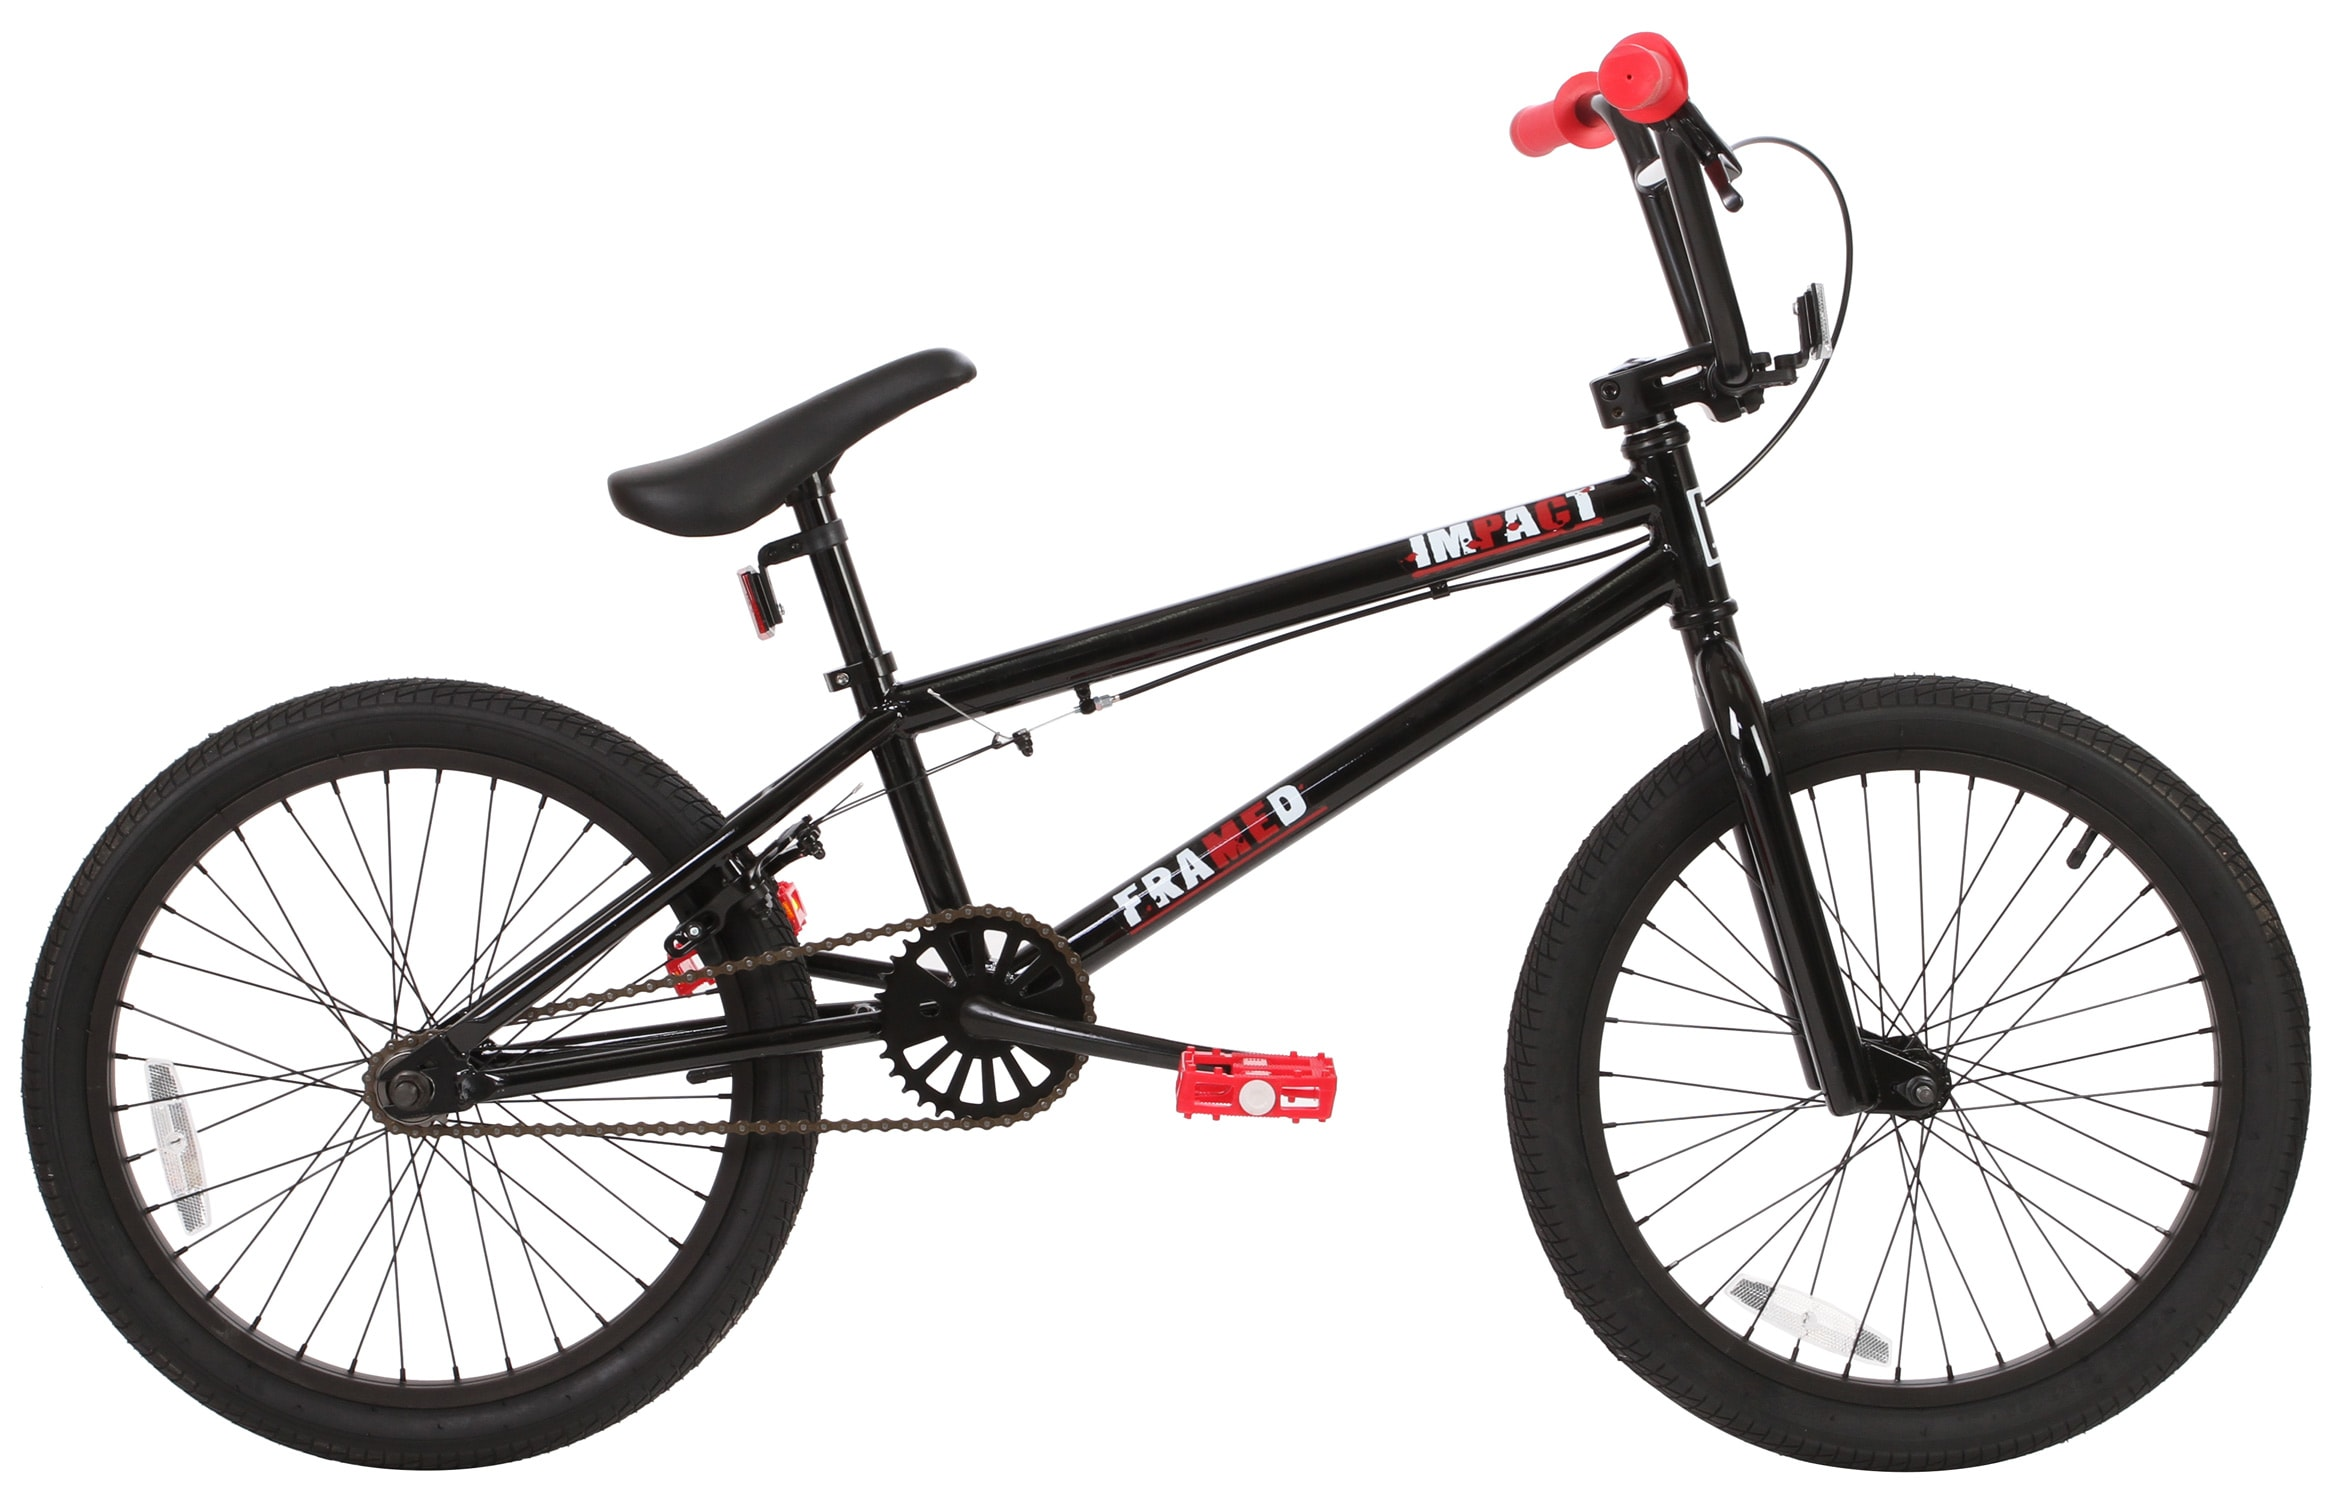 Bmx Bikes For Sale Near Me Framed Impact BMX Bike in